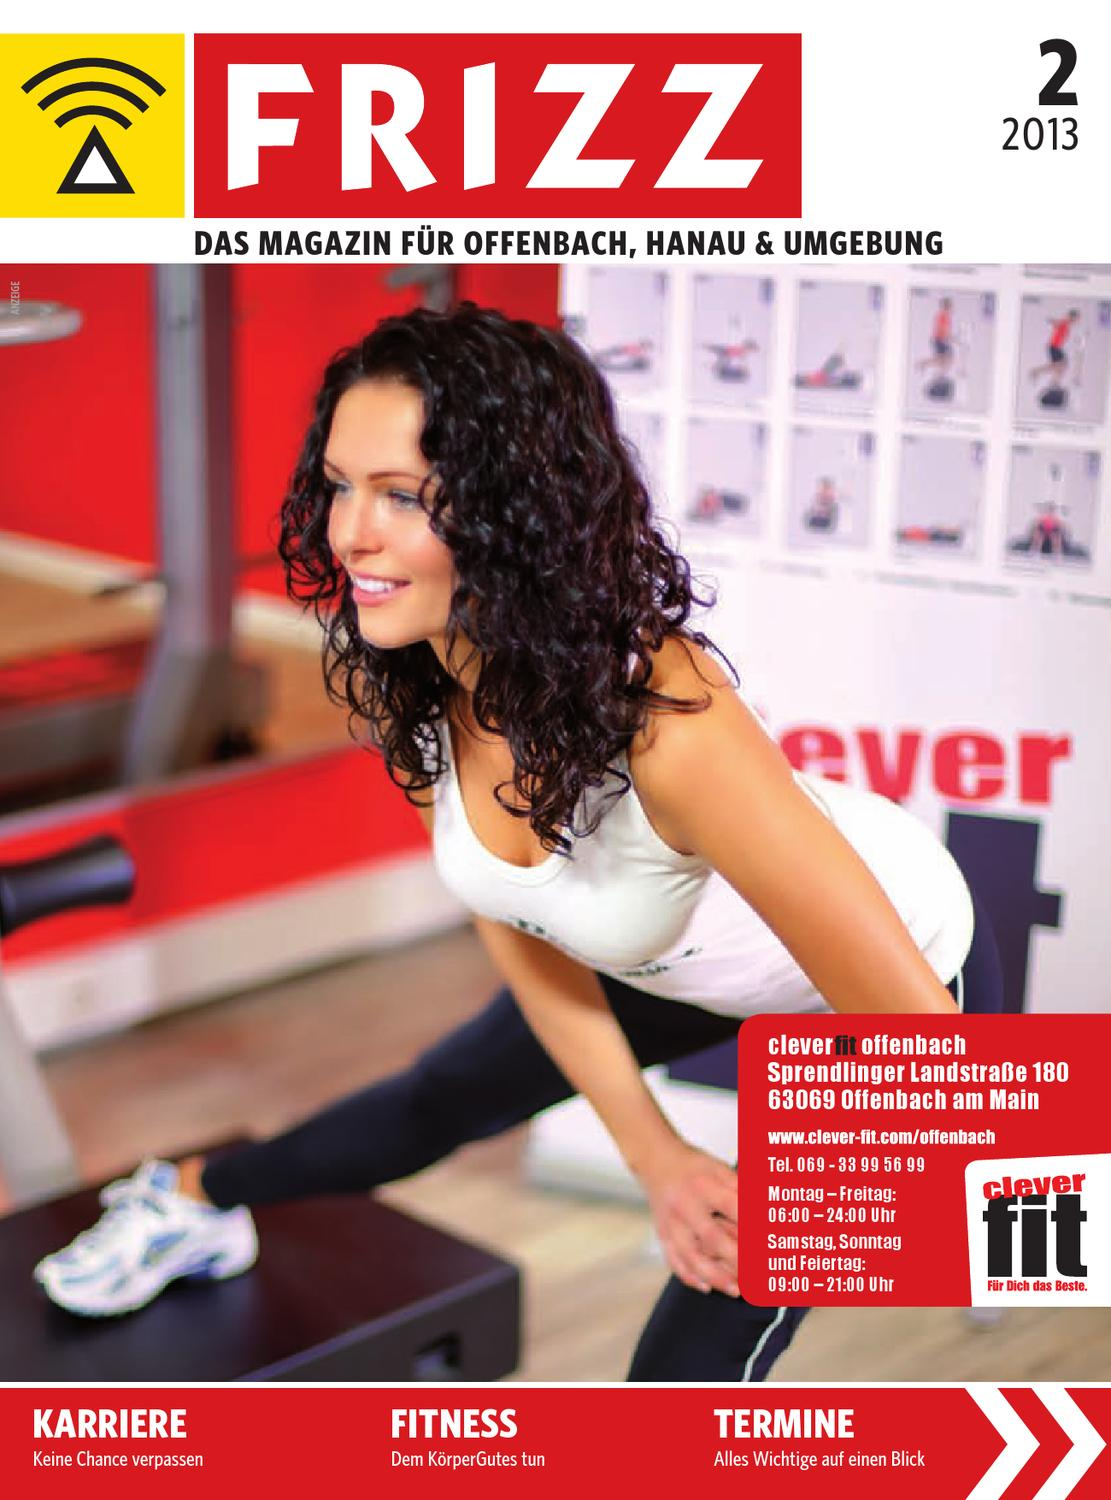 FRIZZ Das Magazin Offenbach 201302 By Frizz